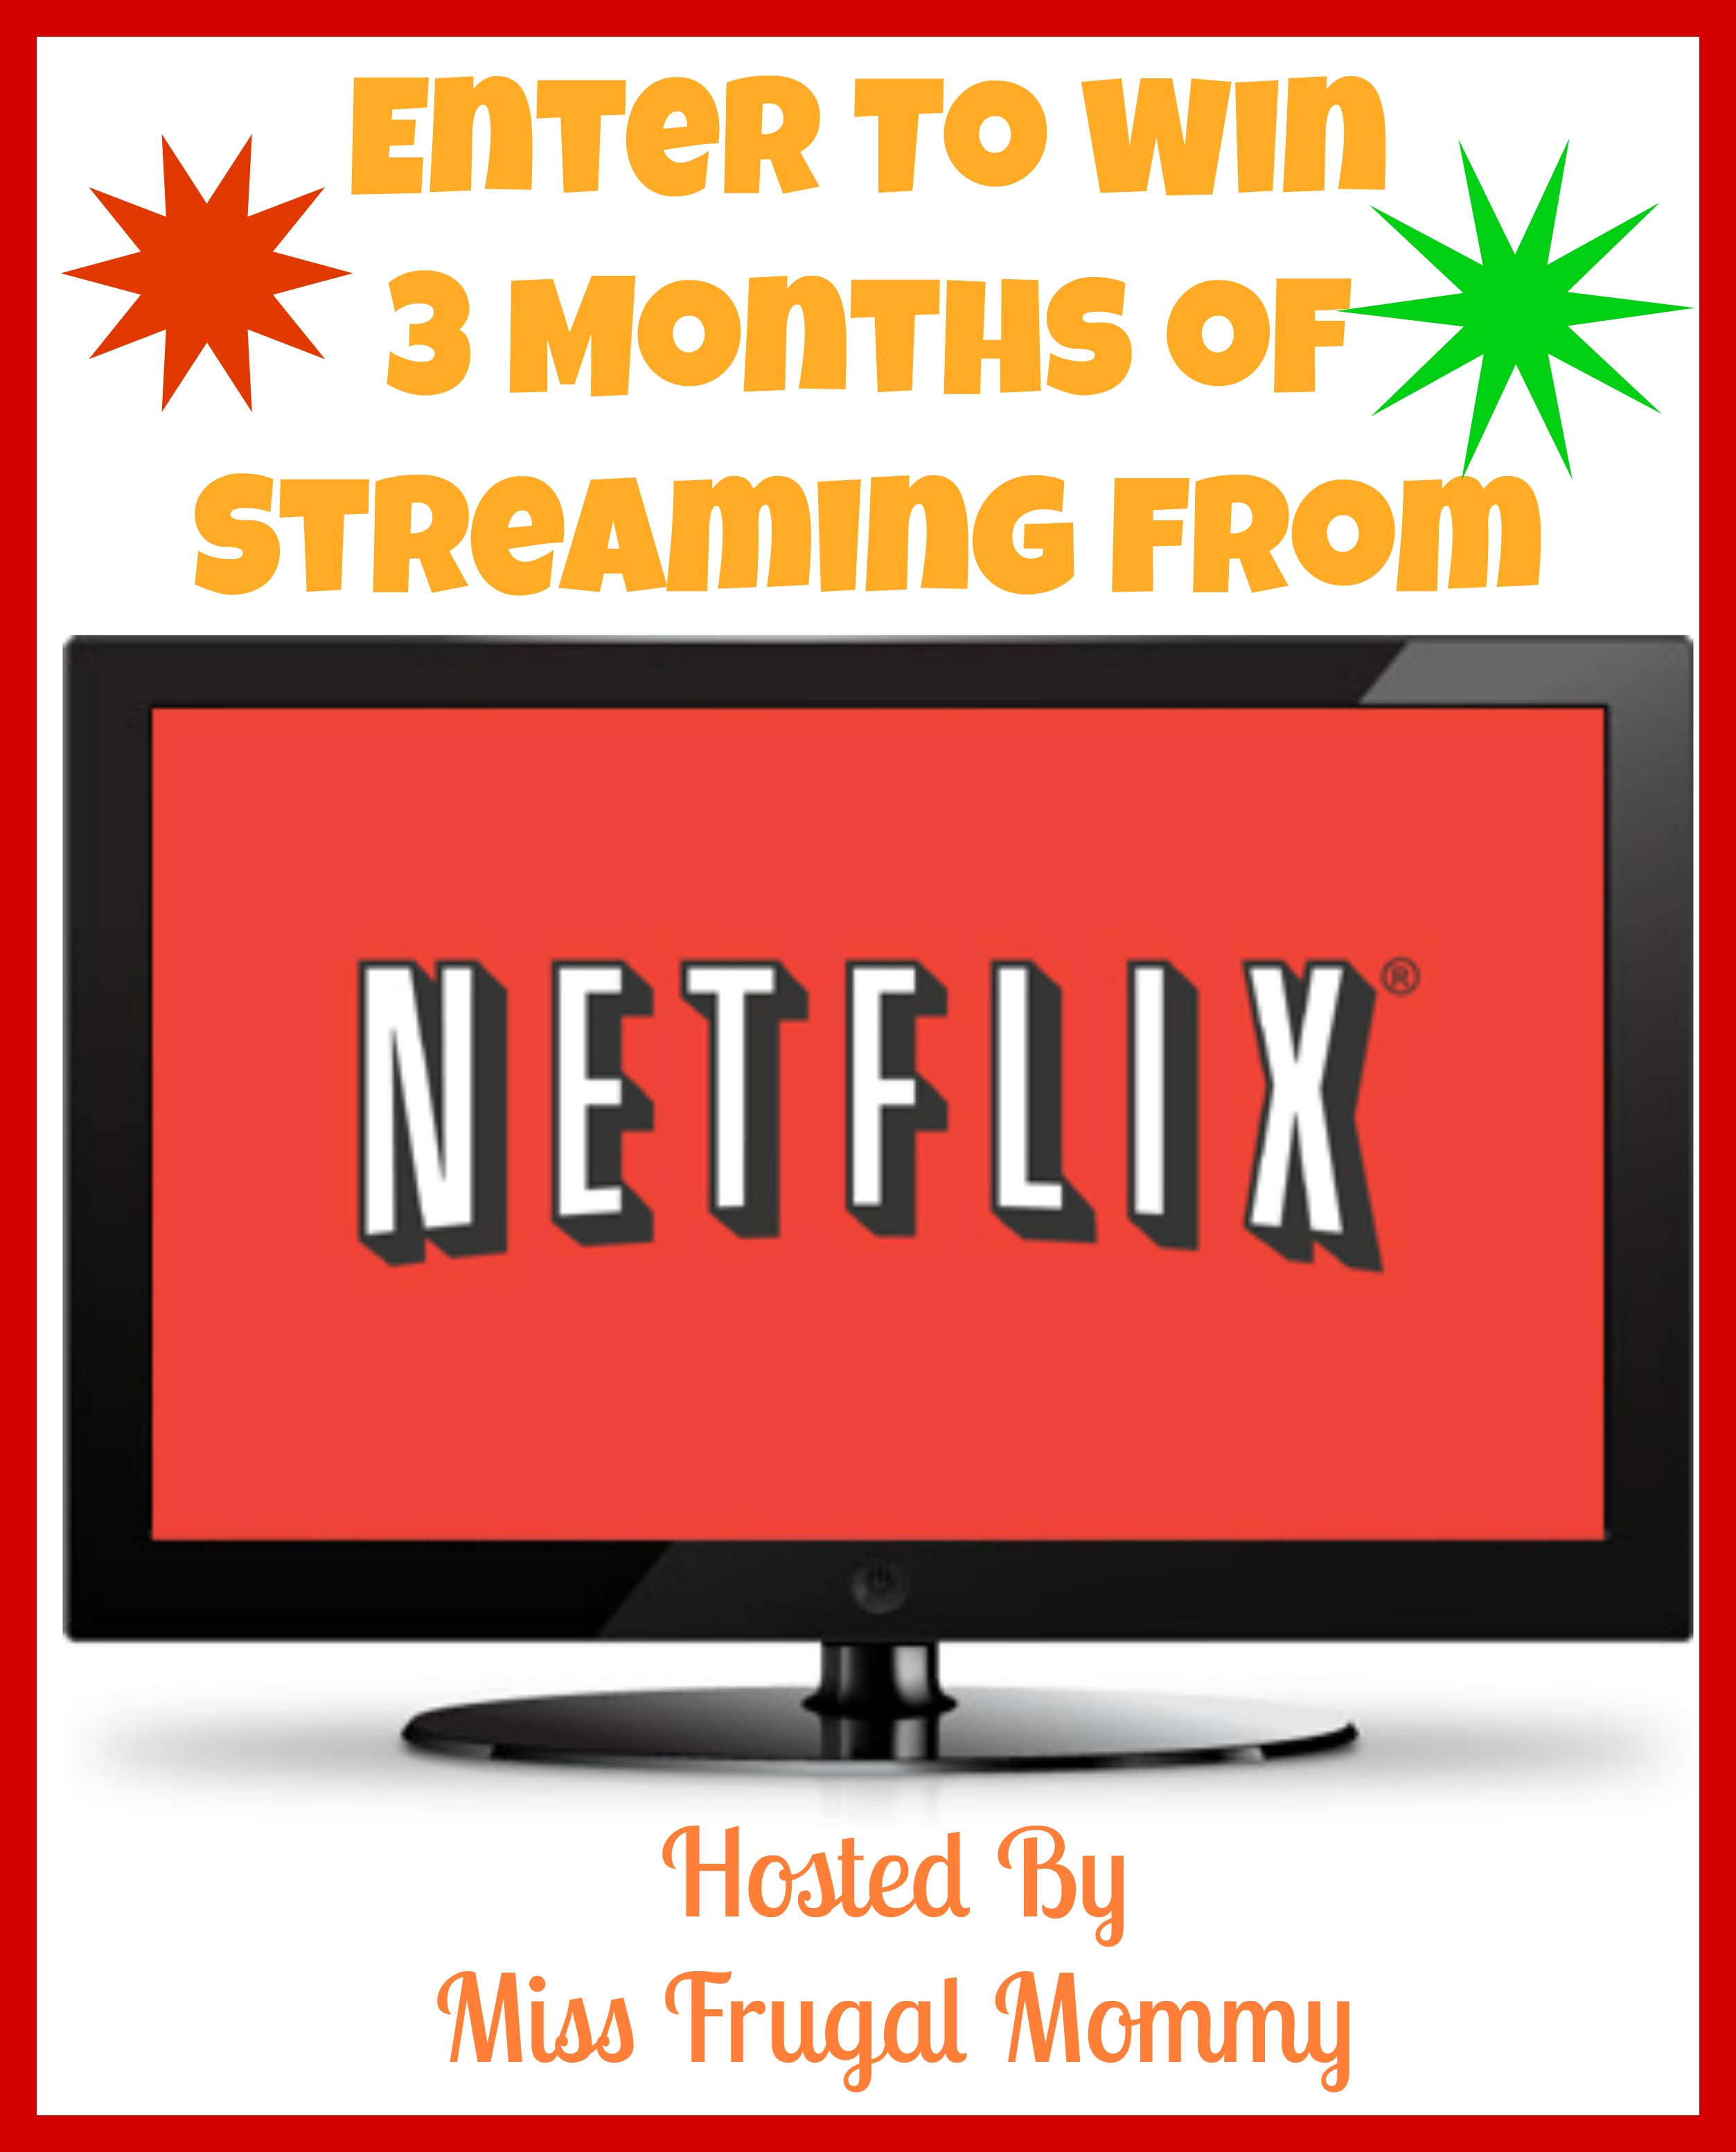 Enter To Win 3 Months of Netflix! #StreamTeam